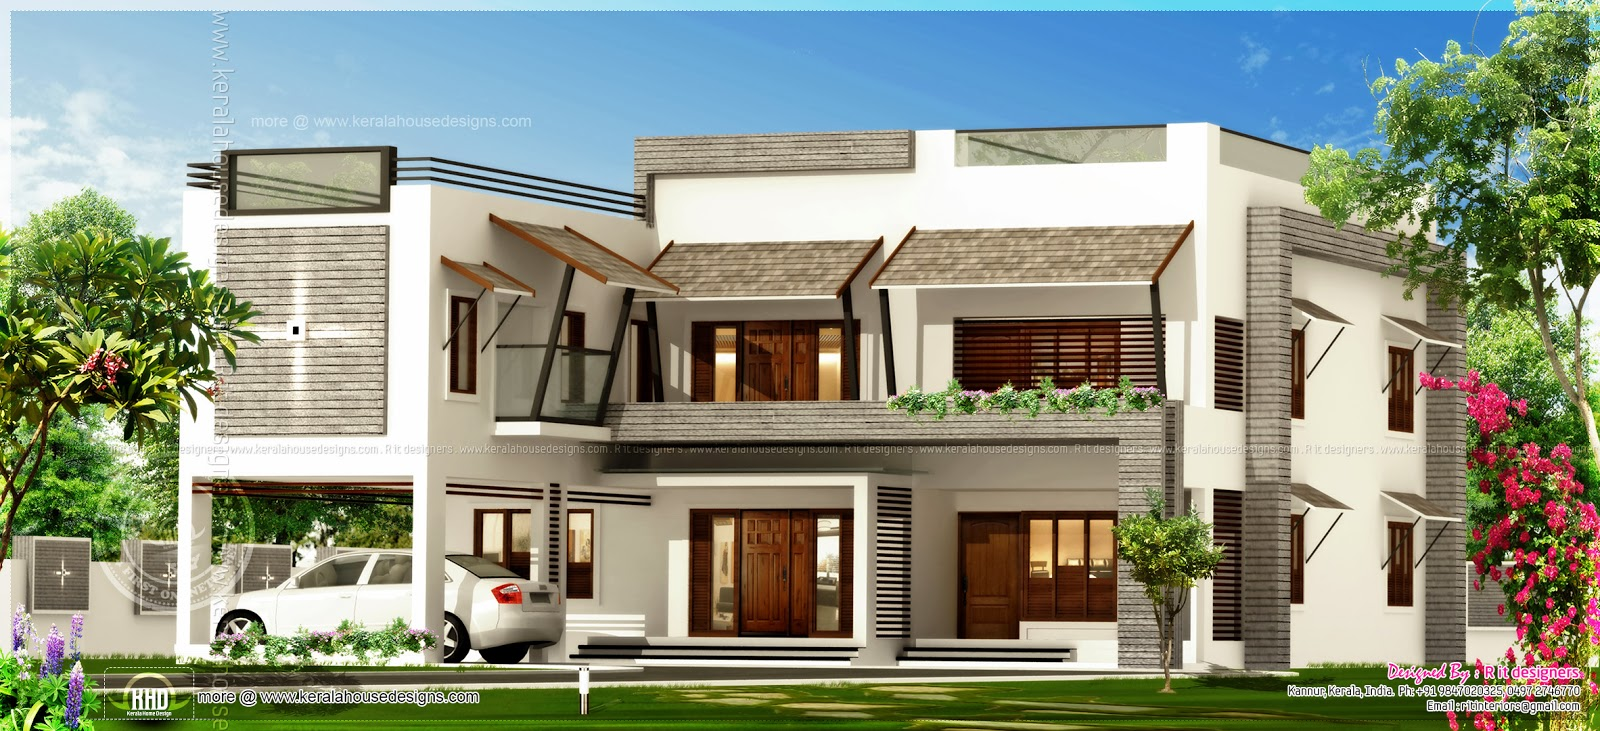 Front Elevation Color : Kerala home design and floor plans luxury flat roof house